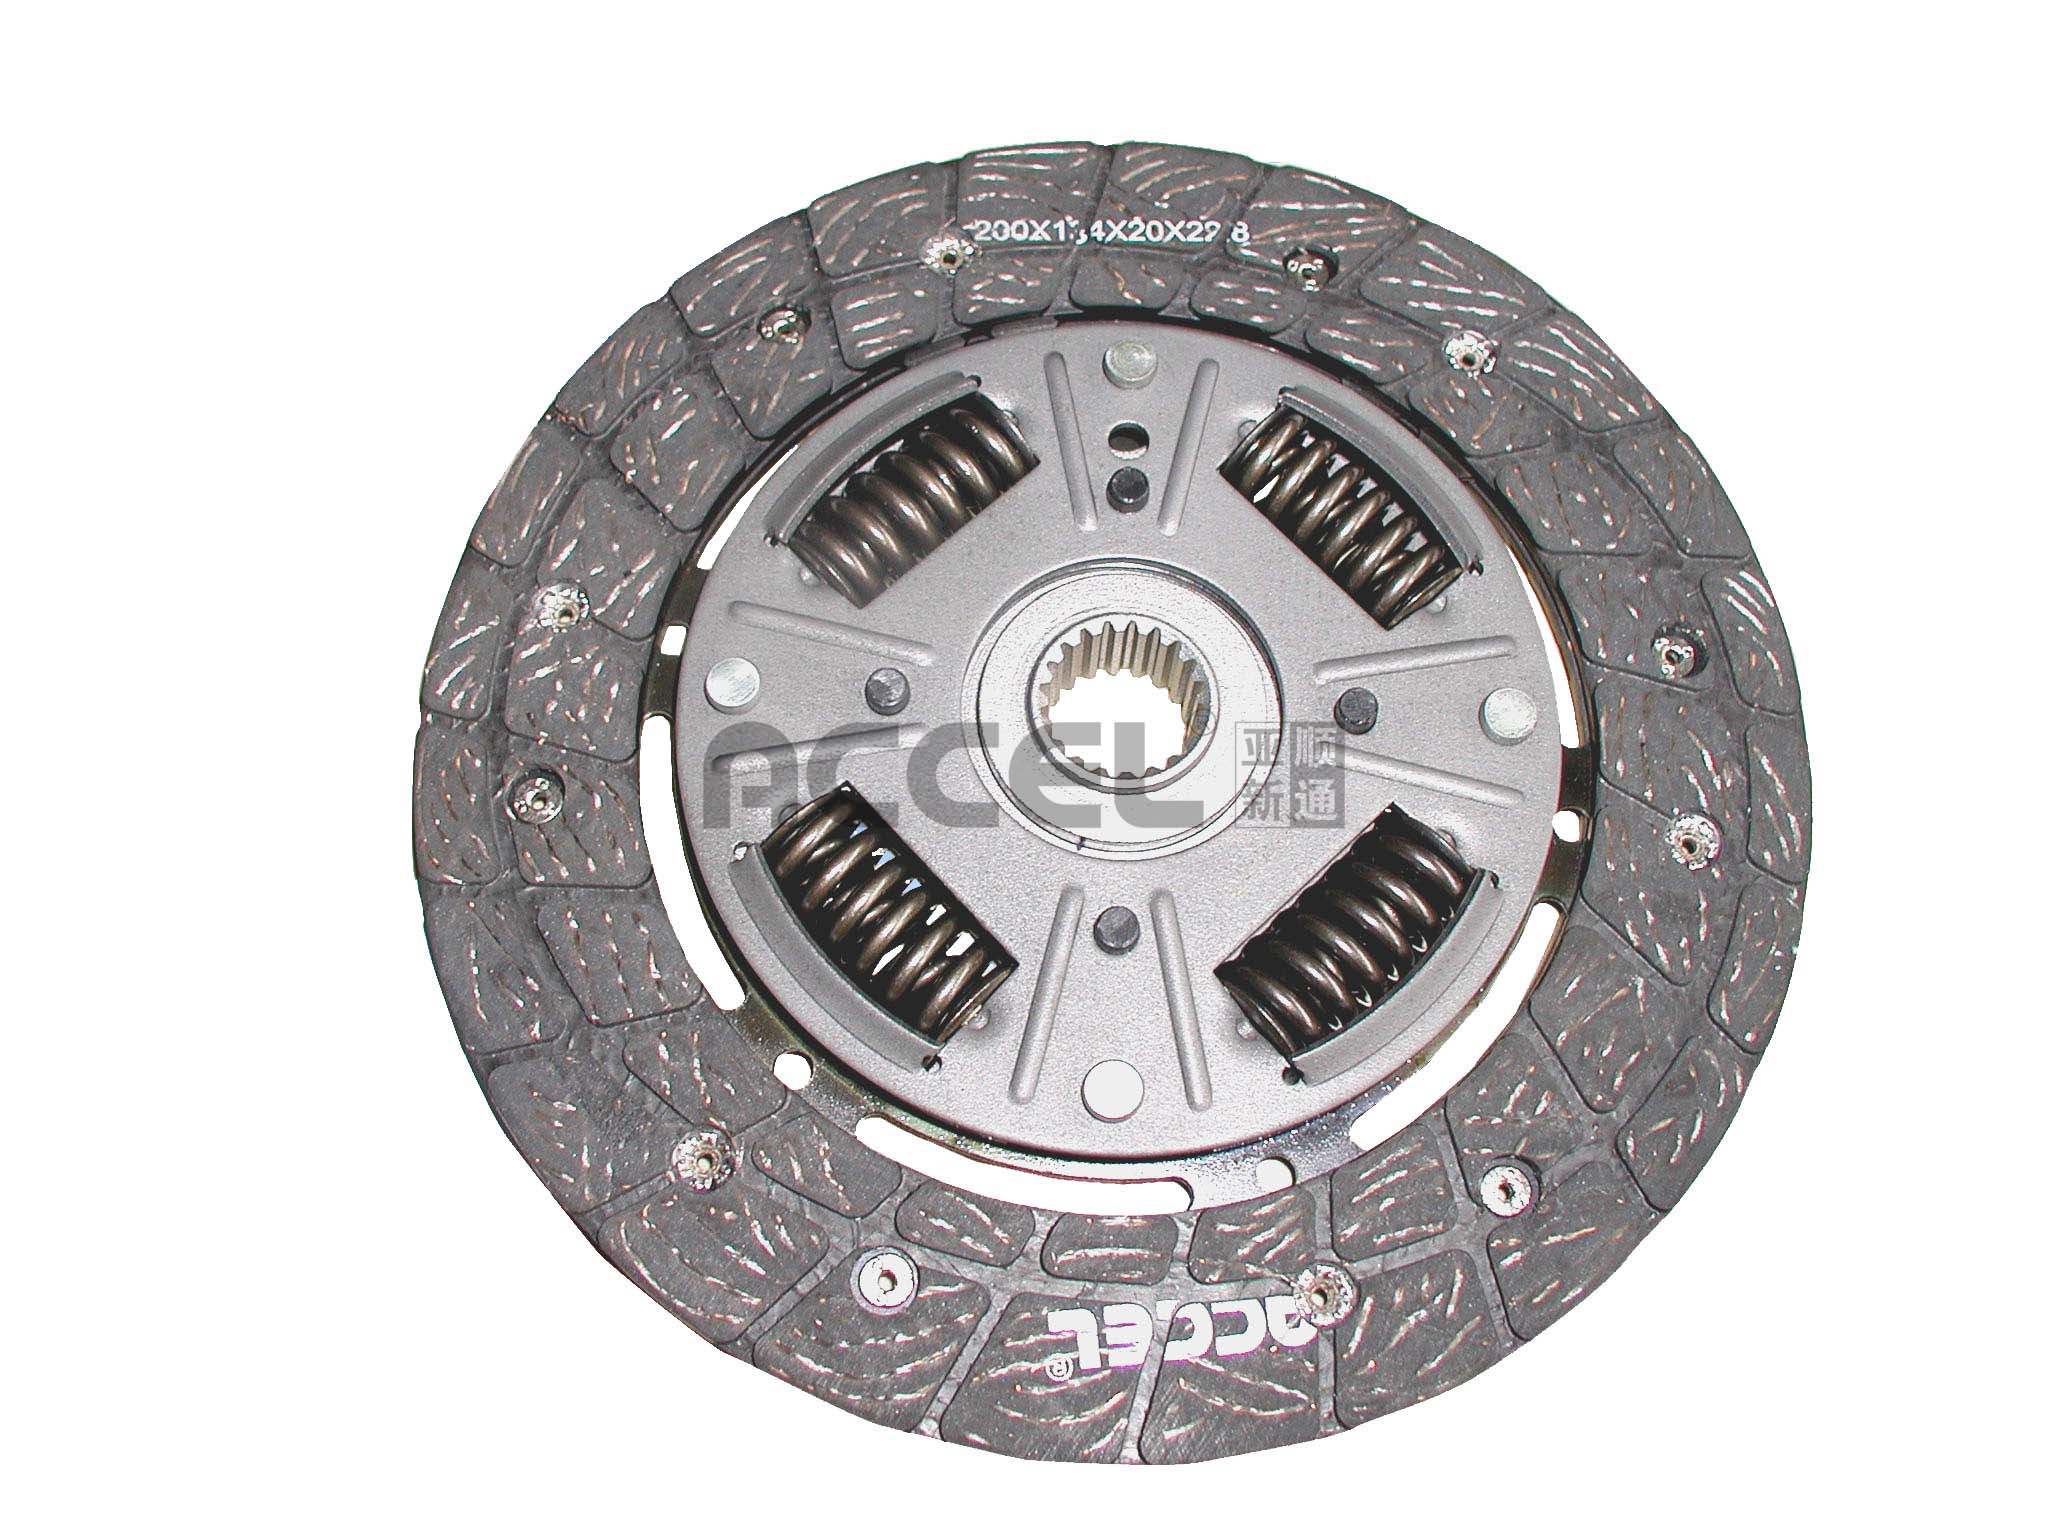 Clutch Disc/OE:1878 022 941/200*135*20*22.8/ARS-001/RUSSIA Car/CL1061